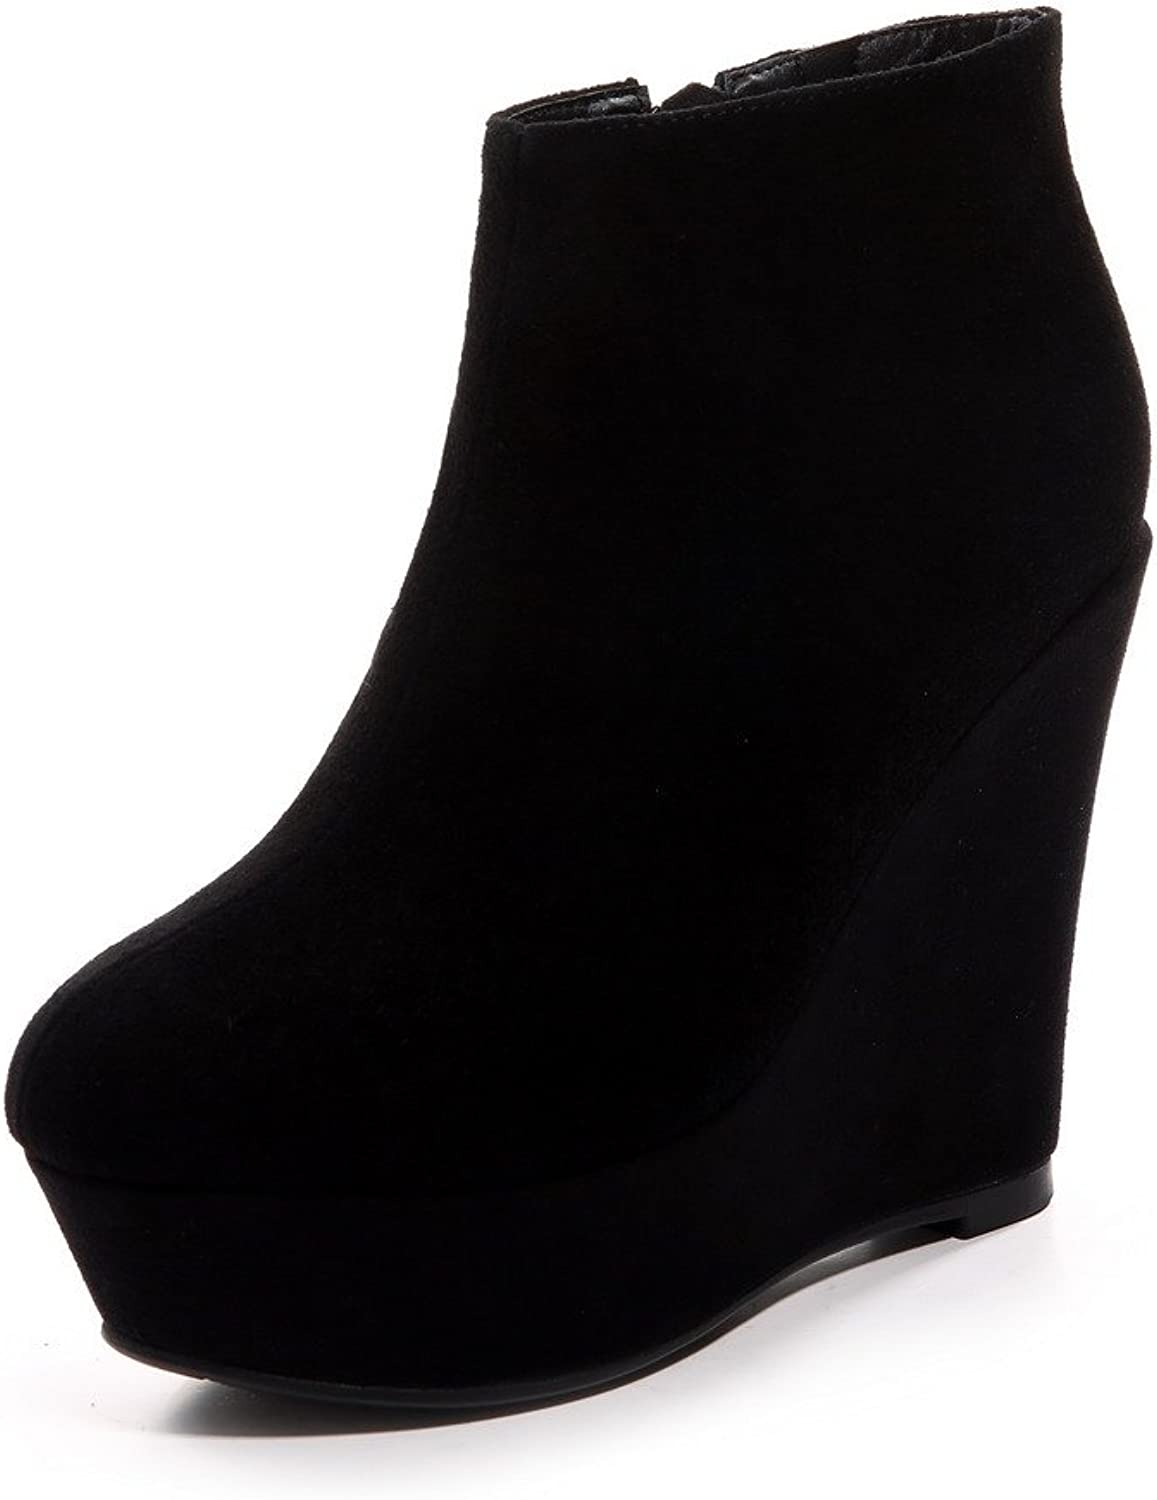 AmoonyFashion Women's Round Toe Closed Toe High Heels Boots with Platform and Slipping Sole